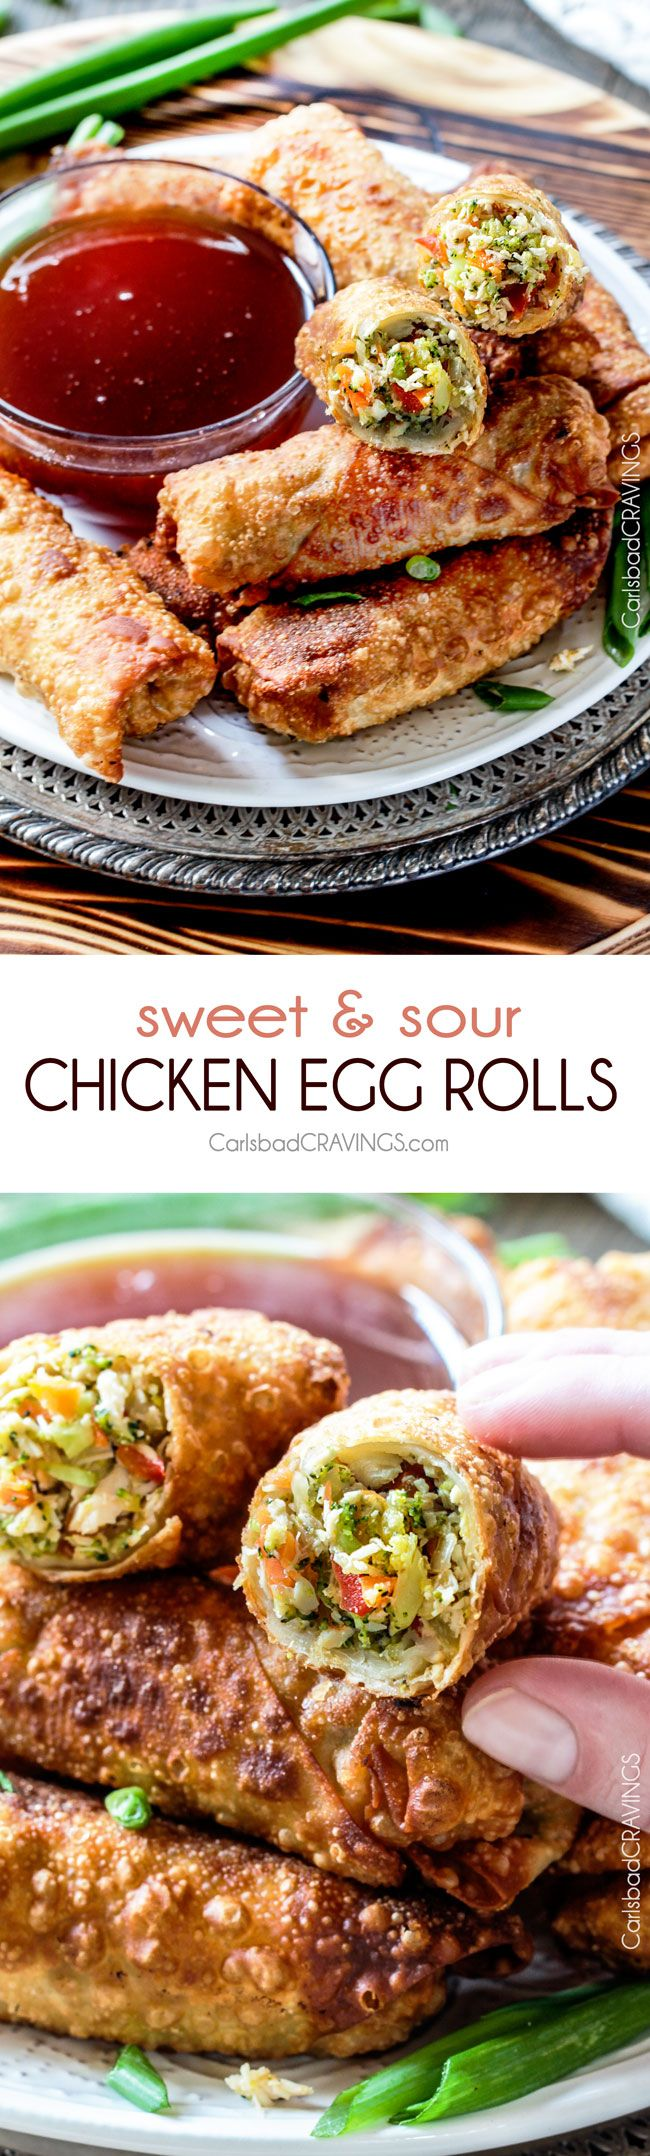 Sweet and Sour Chicken Egg are the best egg rolls I've ever had with the best sweet and sour sauce! And made extra fast with the food processor. I am bringing these to all my holiday parties! #appetizer #NewYears #Christmas